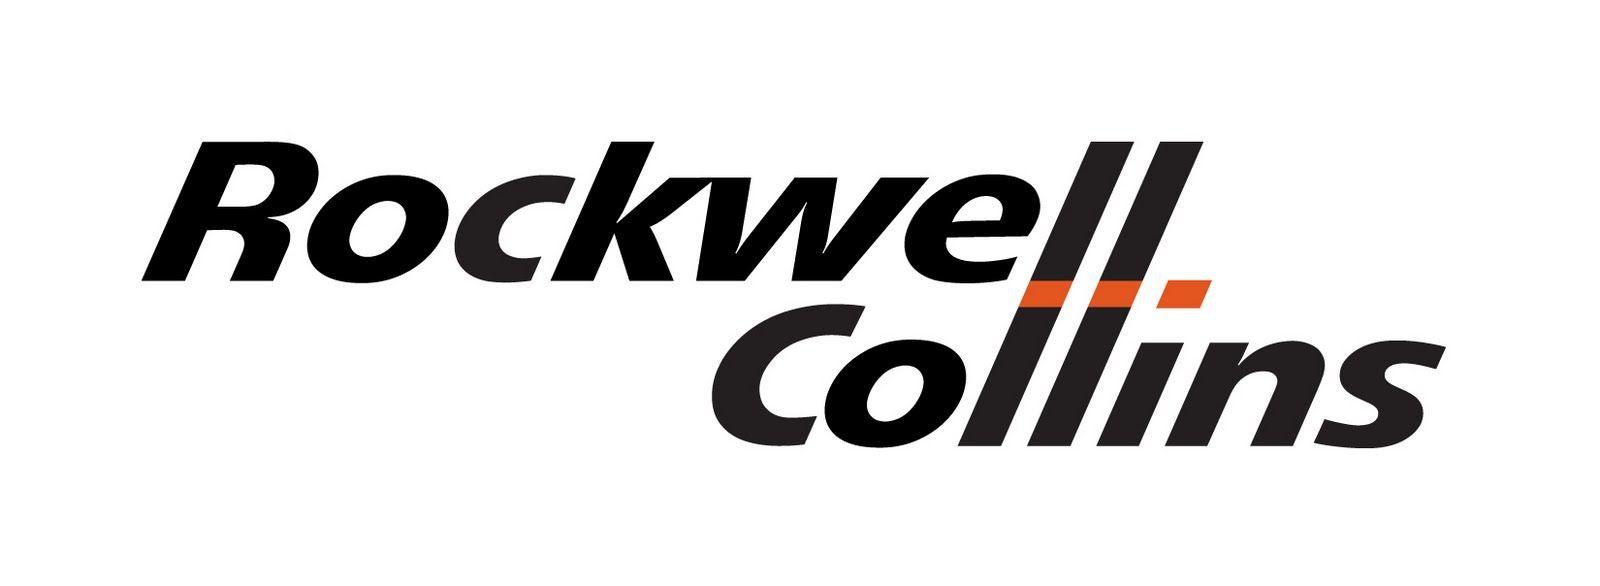 Image result for rockwell collins logo